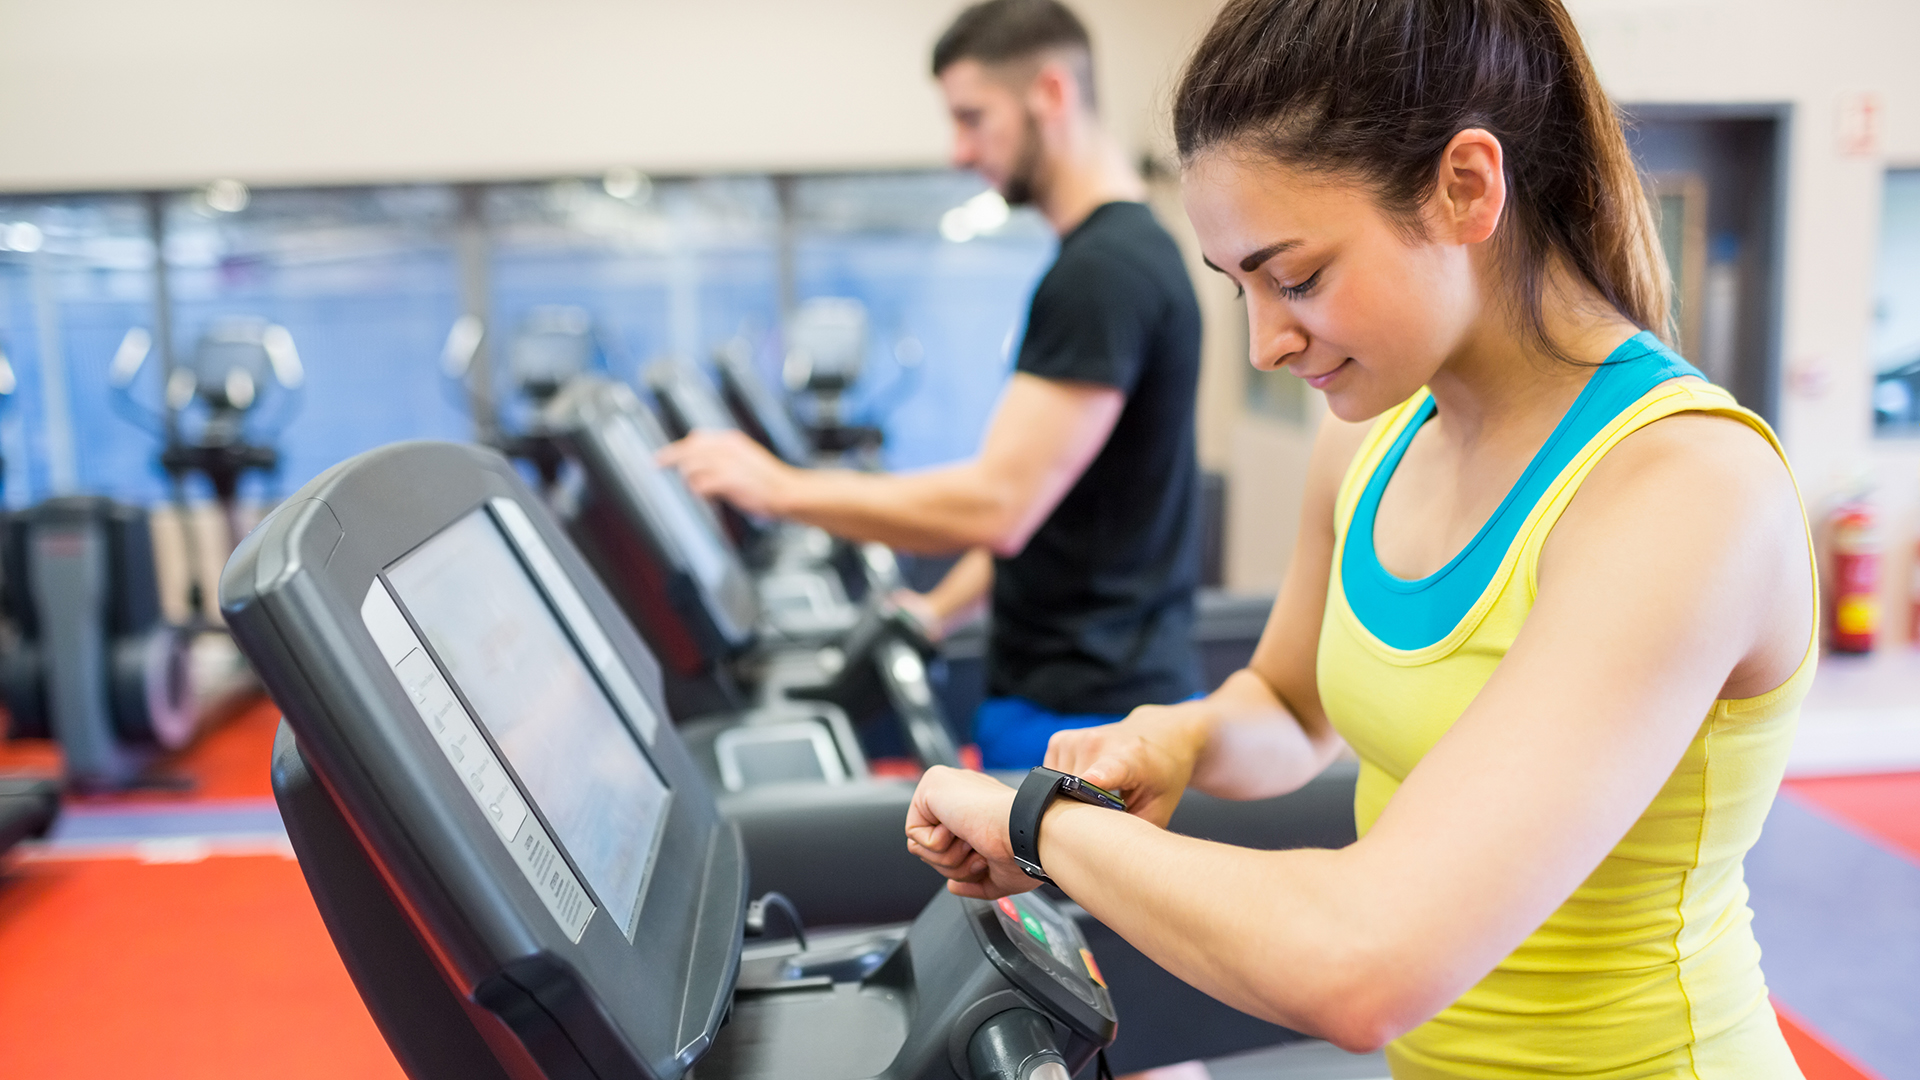 How to get in shape: Say 'nevertheless' to move past weight-loss, exercise excuses